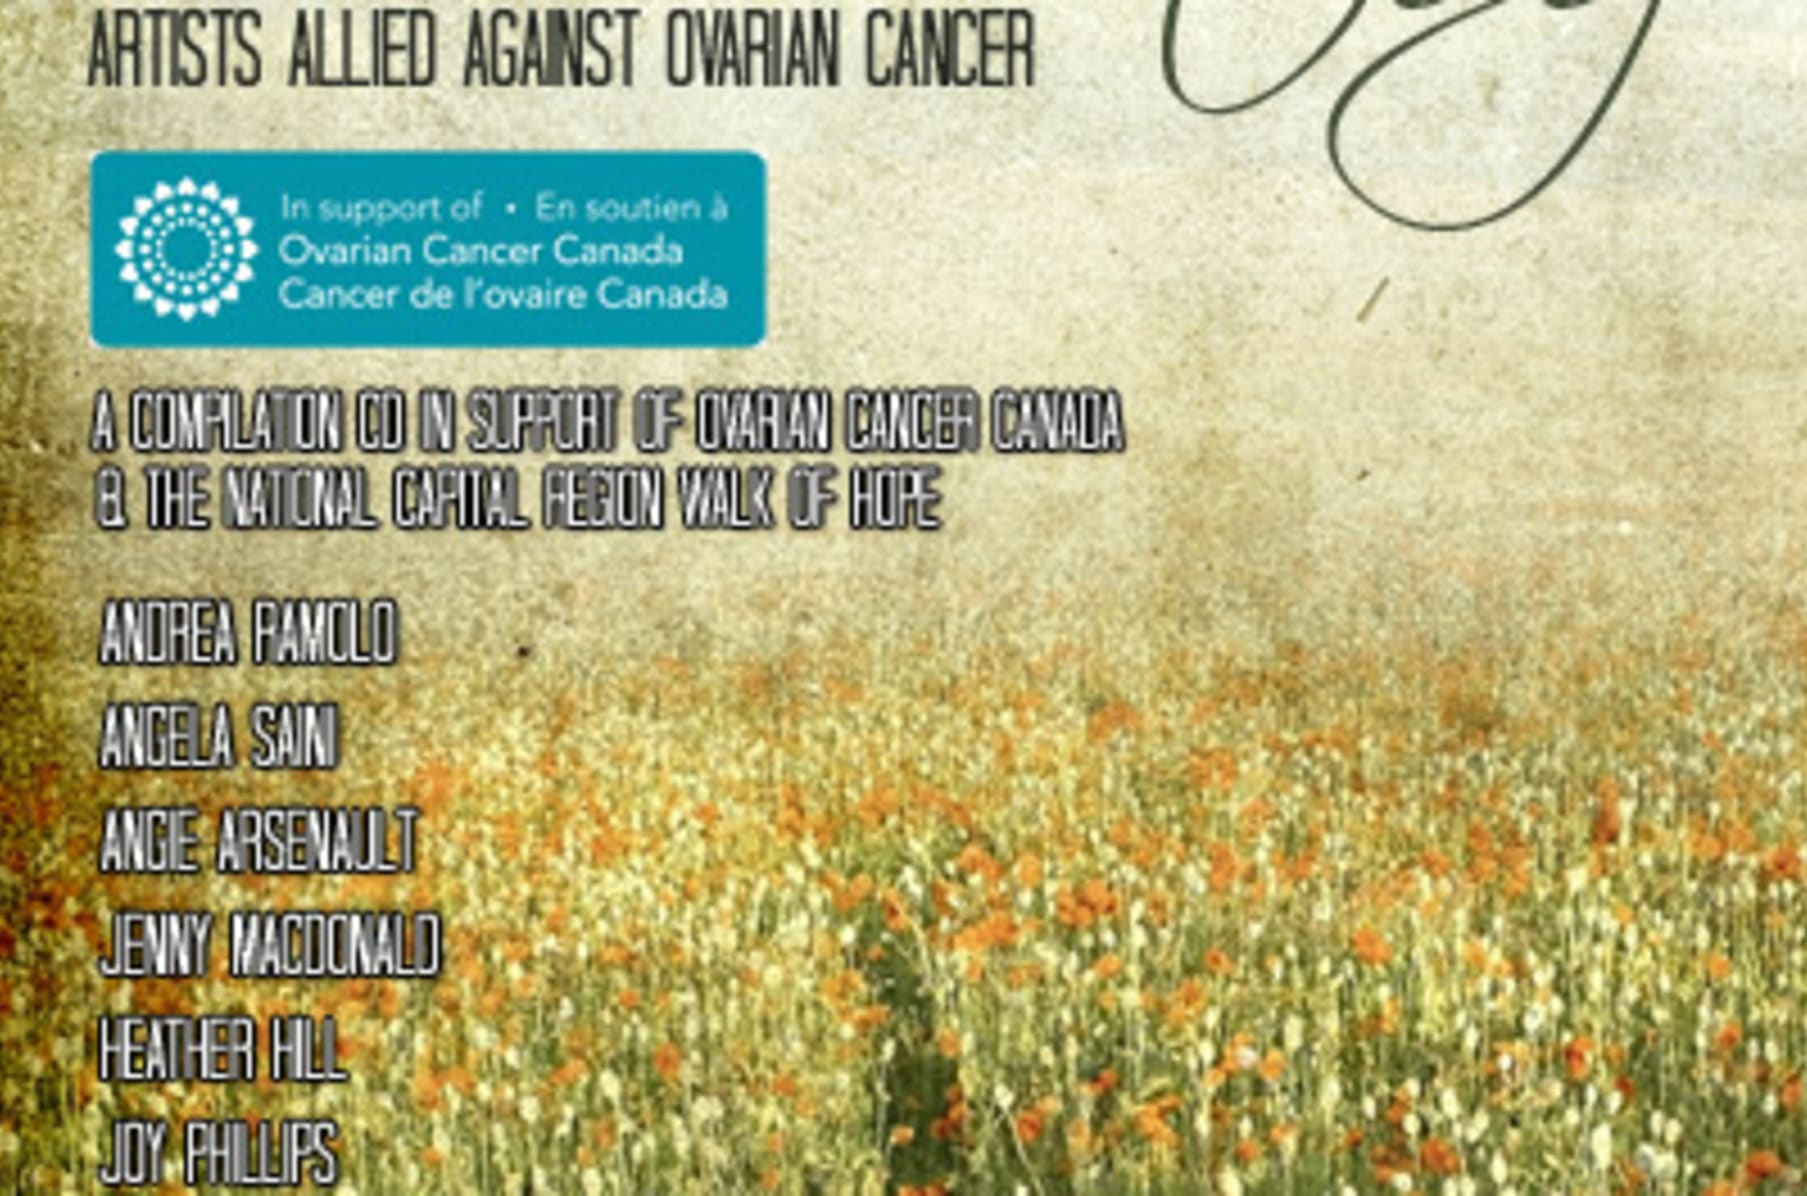 She S Listening Compilation Cd For Ovarian Cancer Canada Indiegogo